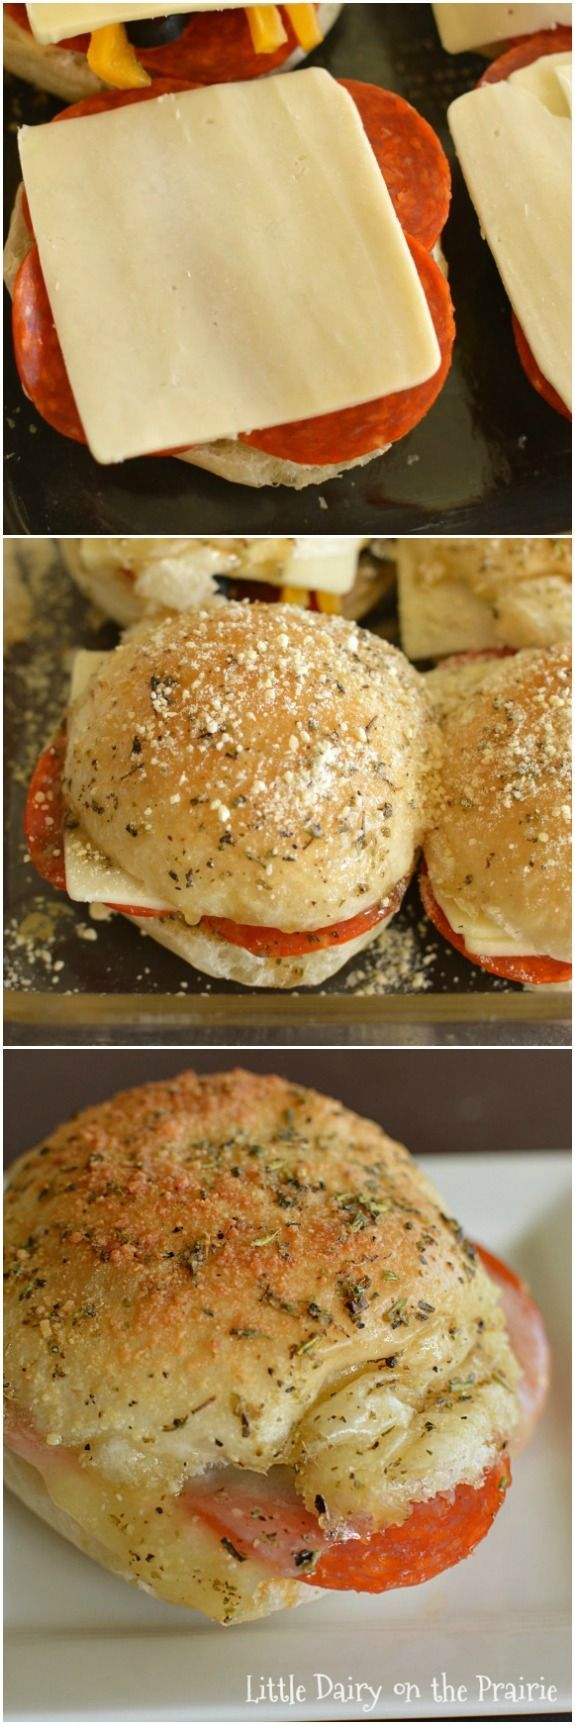 All the pepperoni pizza yumminess in a make ahead slider form! The gooey insides are perfect with the cheesy garlic butter topping! I always keep the ingredients on hand to make these!   Little Dairy on the Prairie